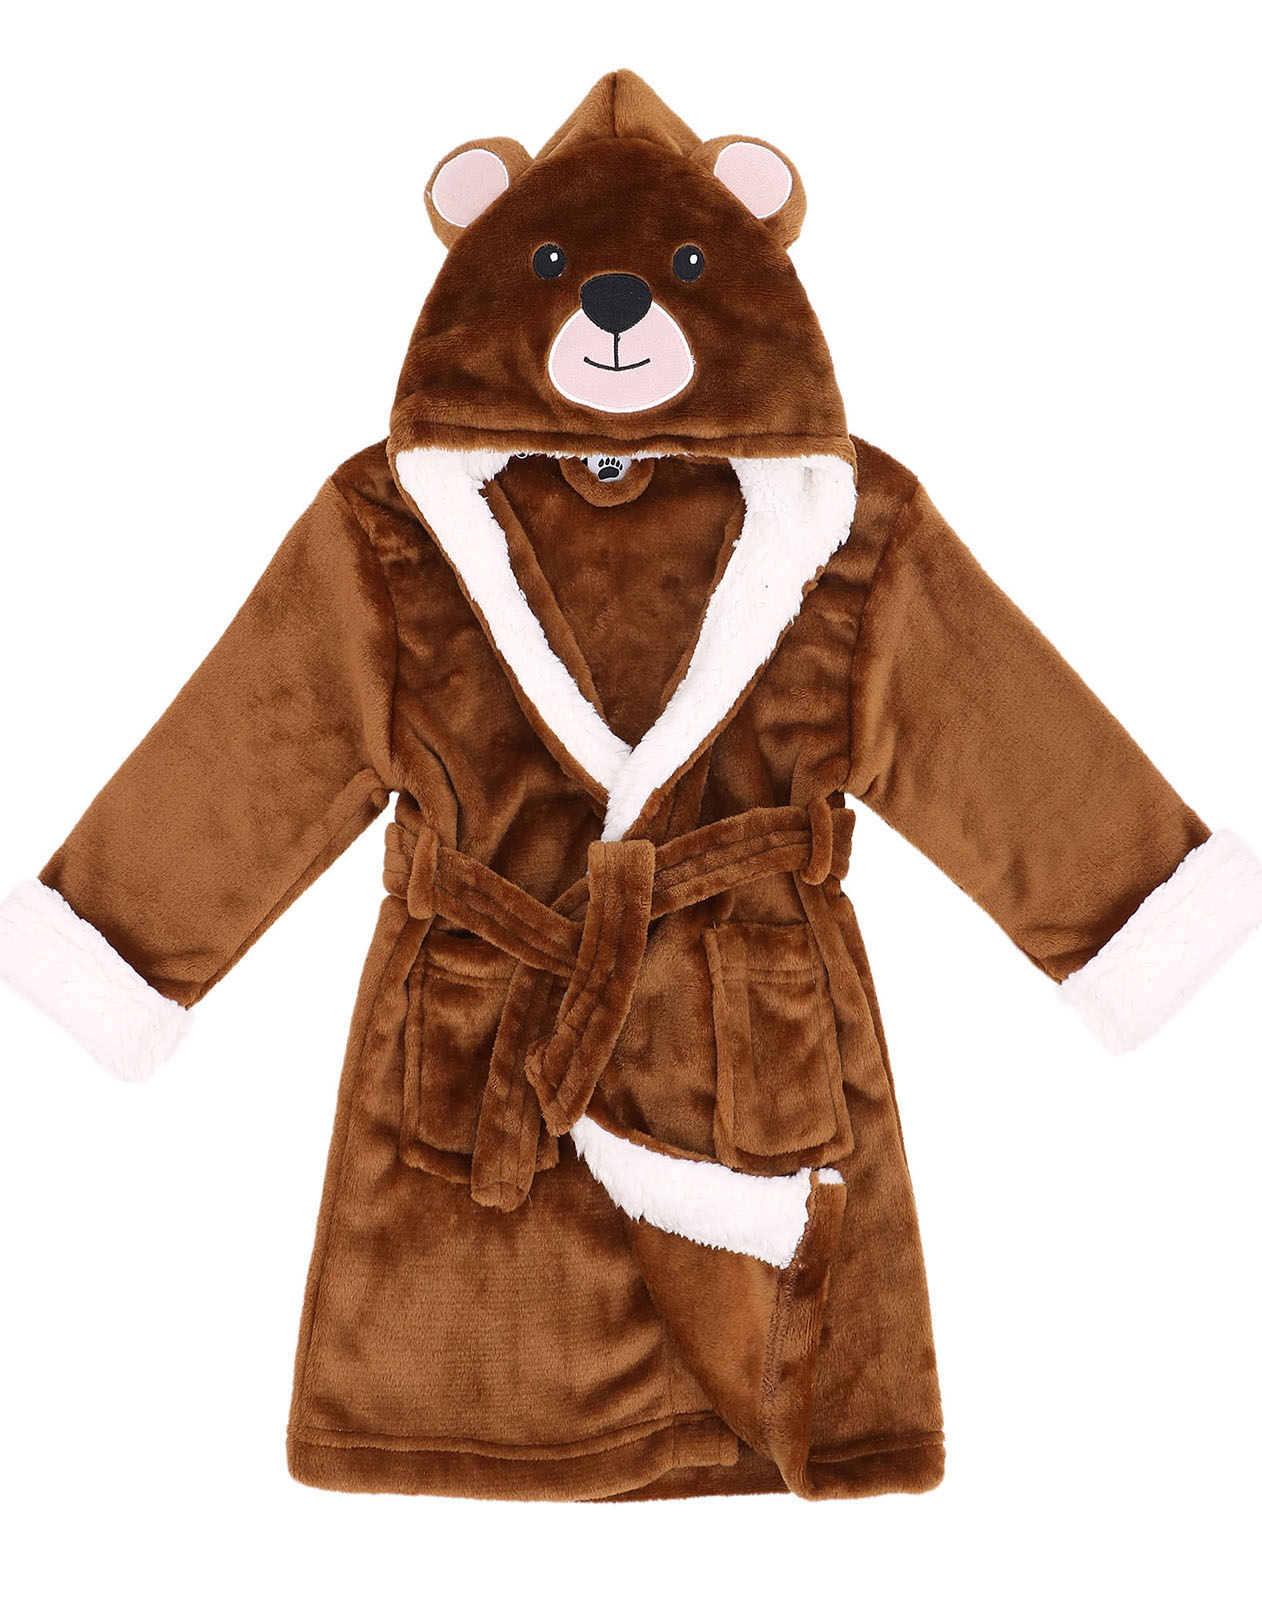 Arctic Paw Zoo Crew Fuzzy Sherpa Lined Hooded Animal Bathrobe,Bear,S(1-3 Years)